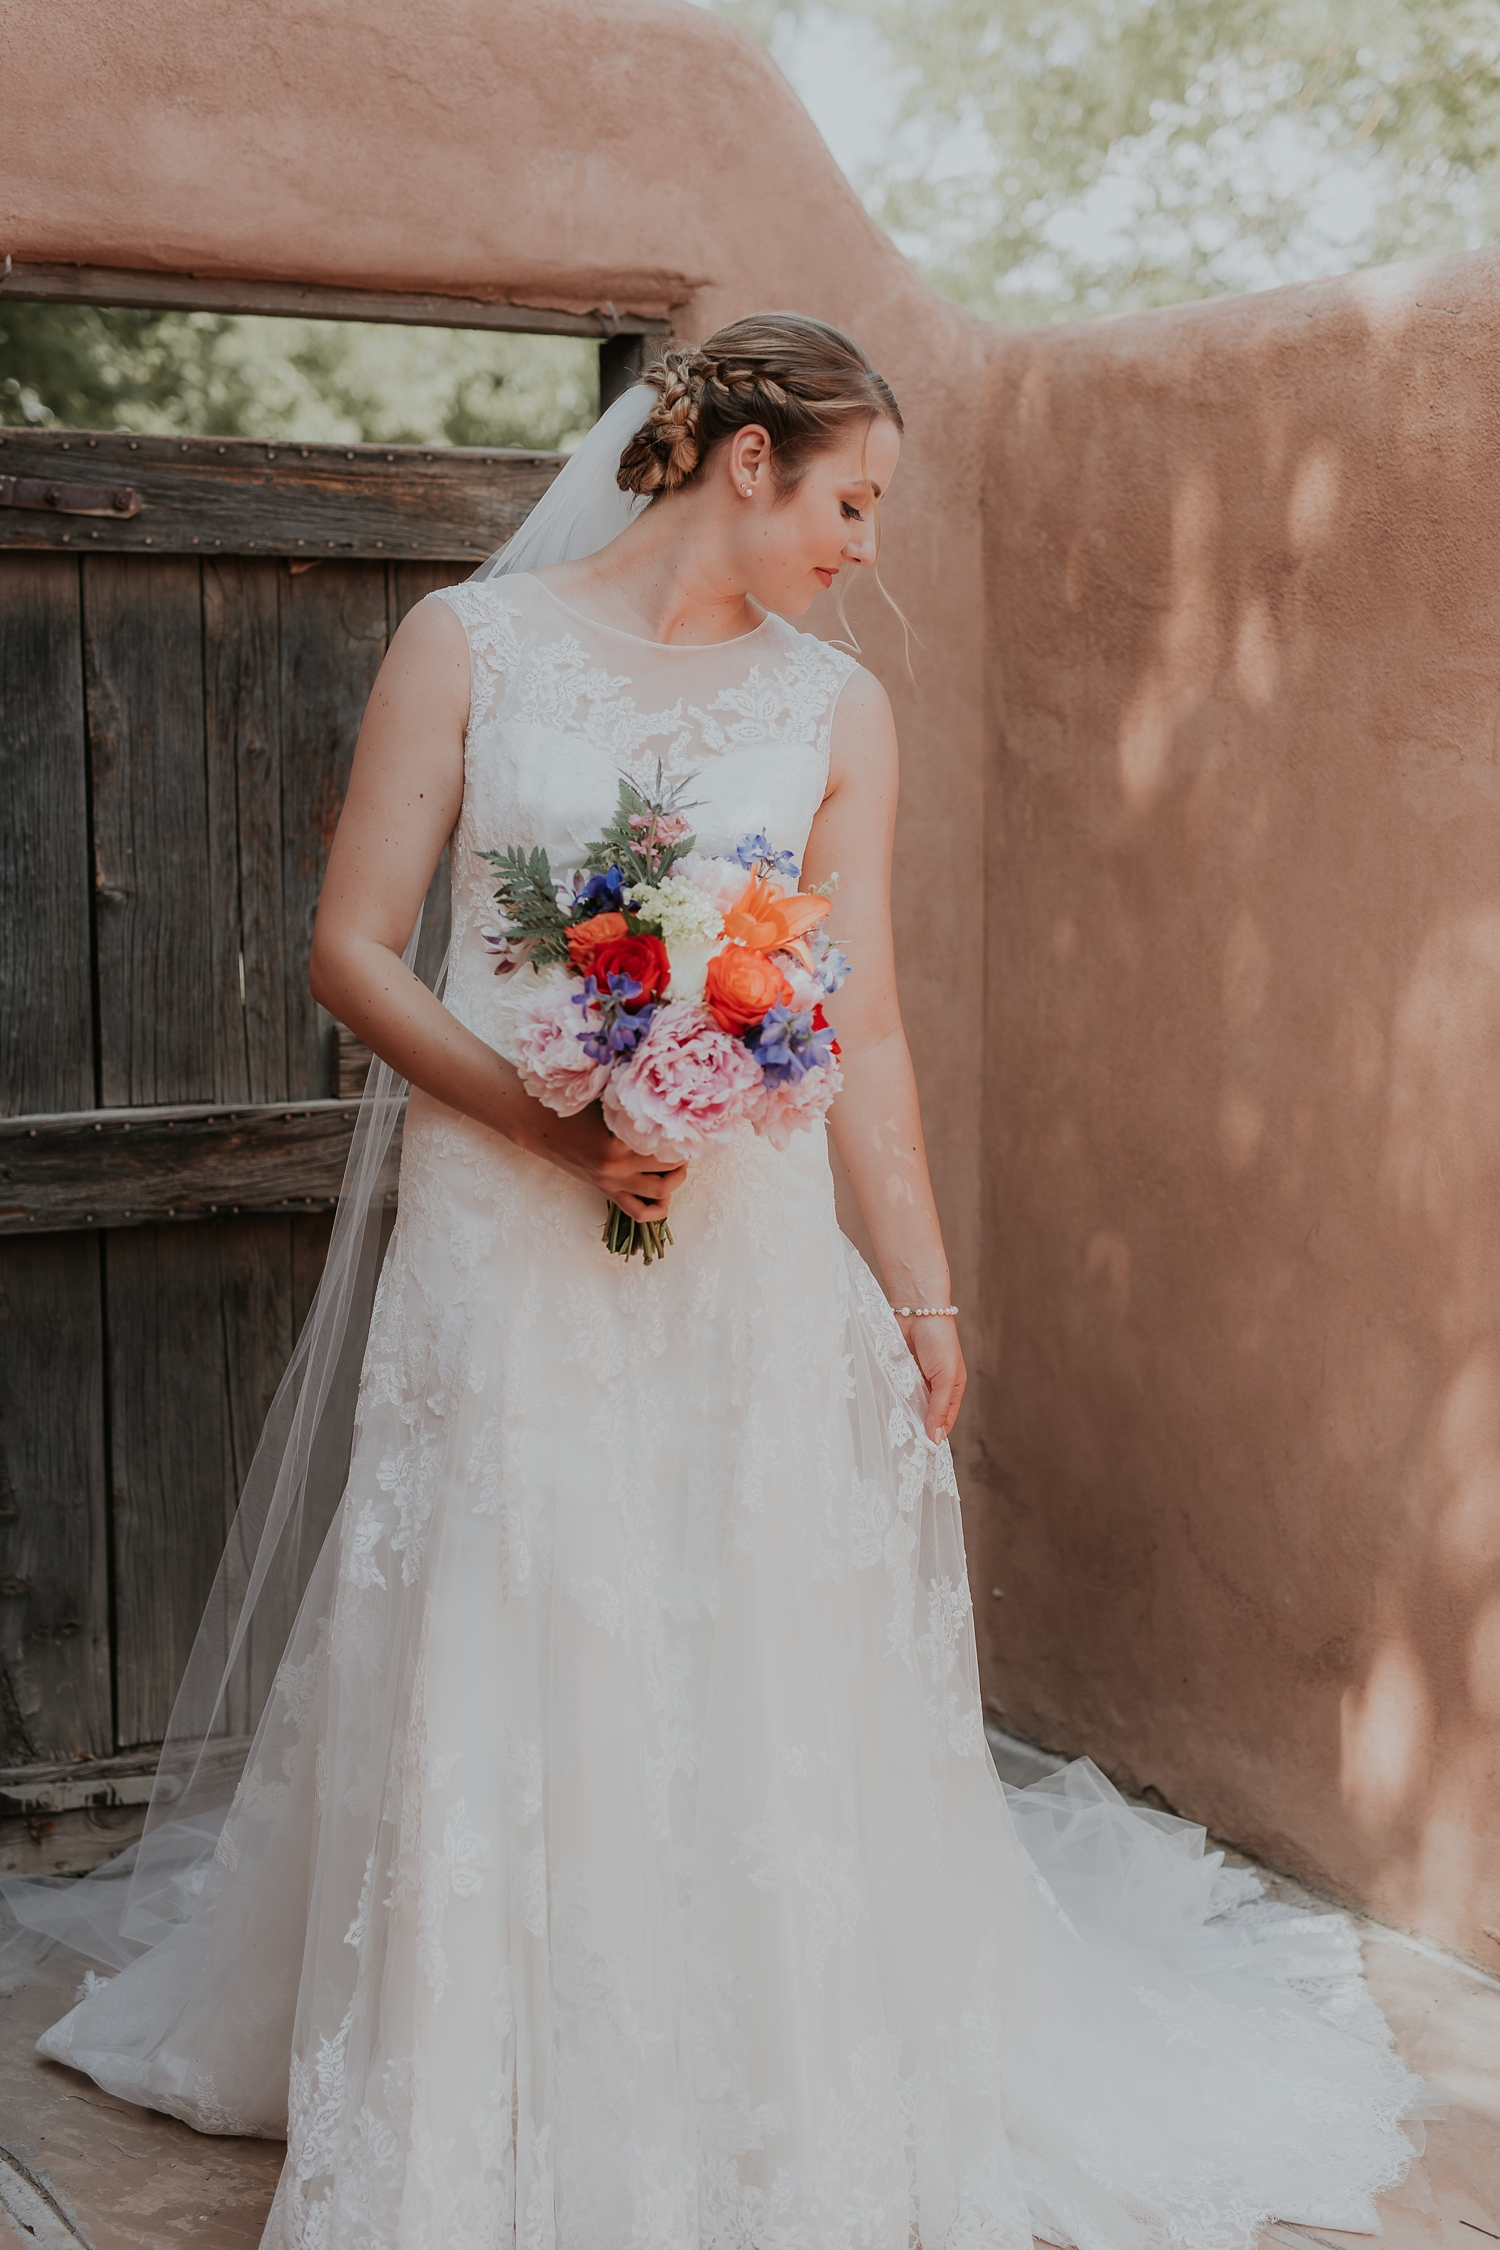 Alicia+lucia+photography+-+albuquerque+wedding+photographer+-+santa+fe+wedding+photography+-+new+mexico+wedding+photographer+-+casa+de+suenos+wedding_0105.jpg